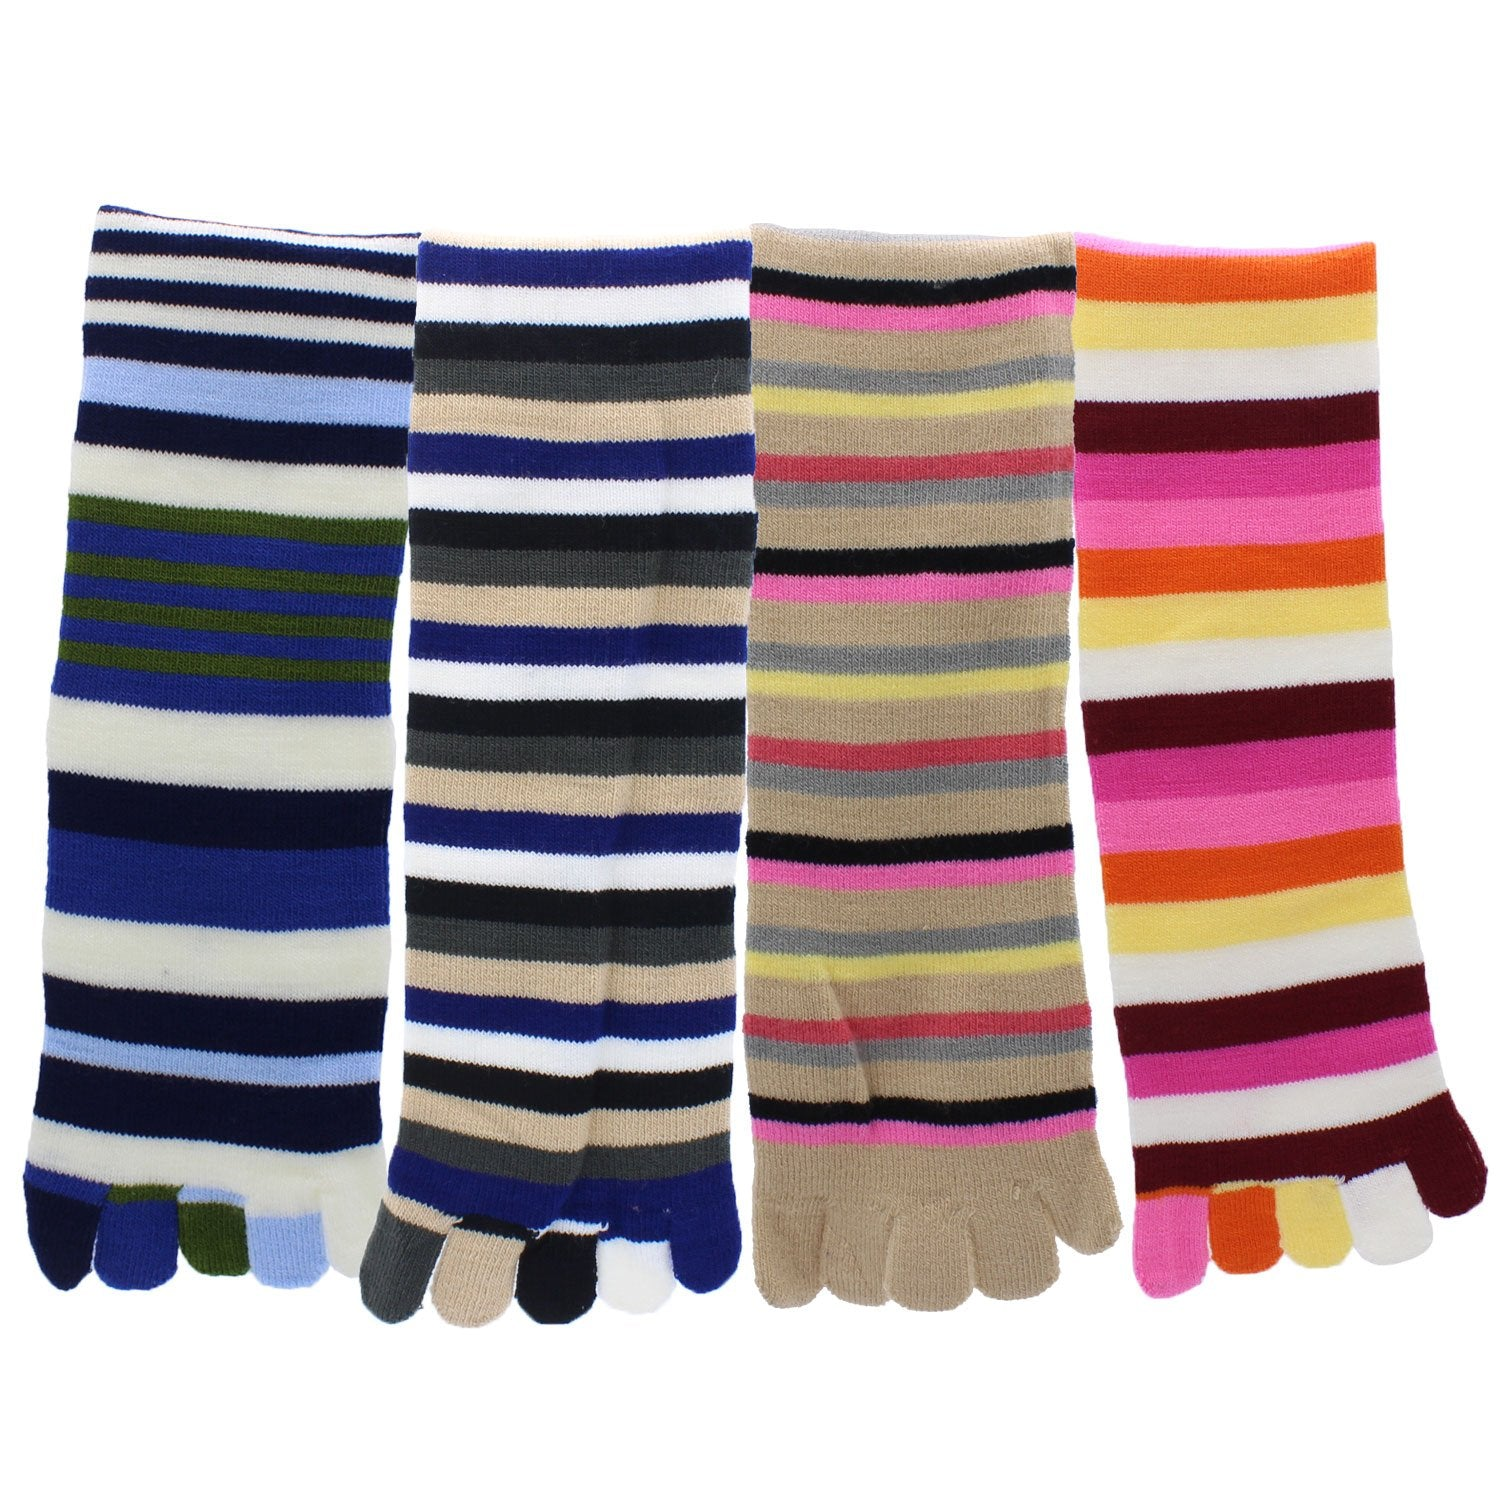 Toe Socks 4-Pack Multicolor Striped - Pack2